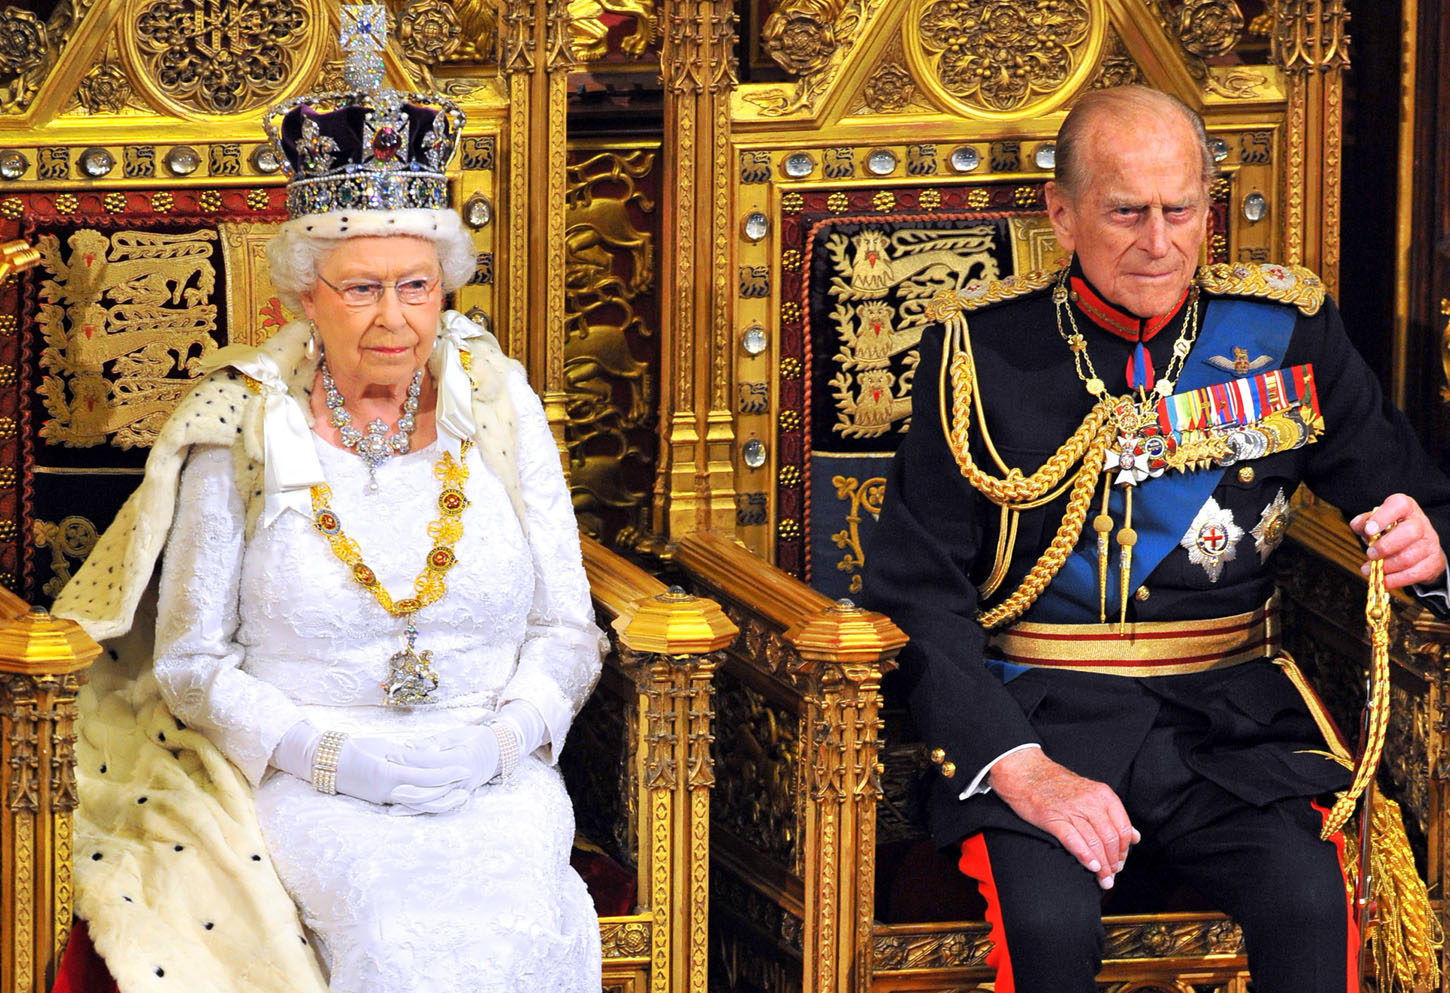 LONDON, ENGLAND - JUNE 04:  Queen Elizabeth II sits with Prince Philip, Duke of Edinburgh as she delivers her speech during the State Opening of Parliament in the House of Lords at the Palace of Westminster on June 4, 2014 in London, England. Queen Elizabeth II is to unveil the coalition government's legislative programme in a speech delivered to Members of Parliament and Peers in The House of Lords. Proposed legislation is expected to be introduced on a 5p charge for plastic bags in England, funding of workplace pensions, new state-funded childcare subsidy and reforms to speed up infrastructure projects.  (Photo by Ray Collins - WPA Pool/Getty Images)